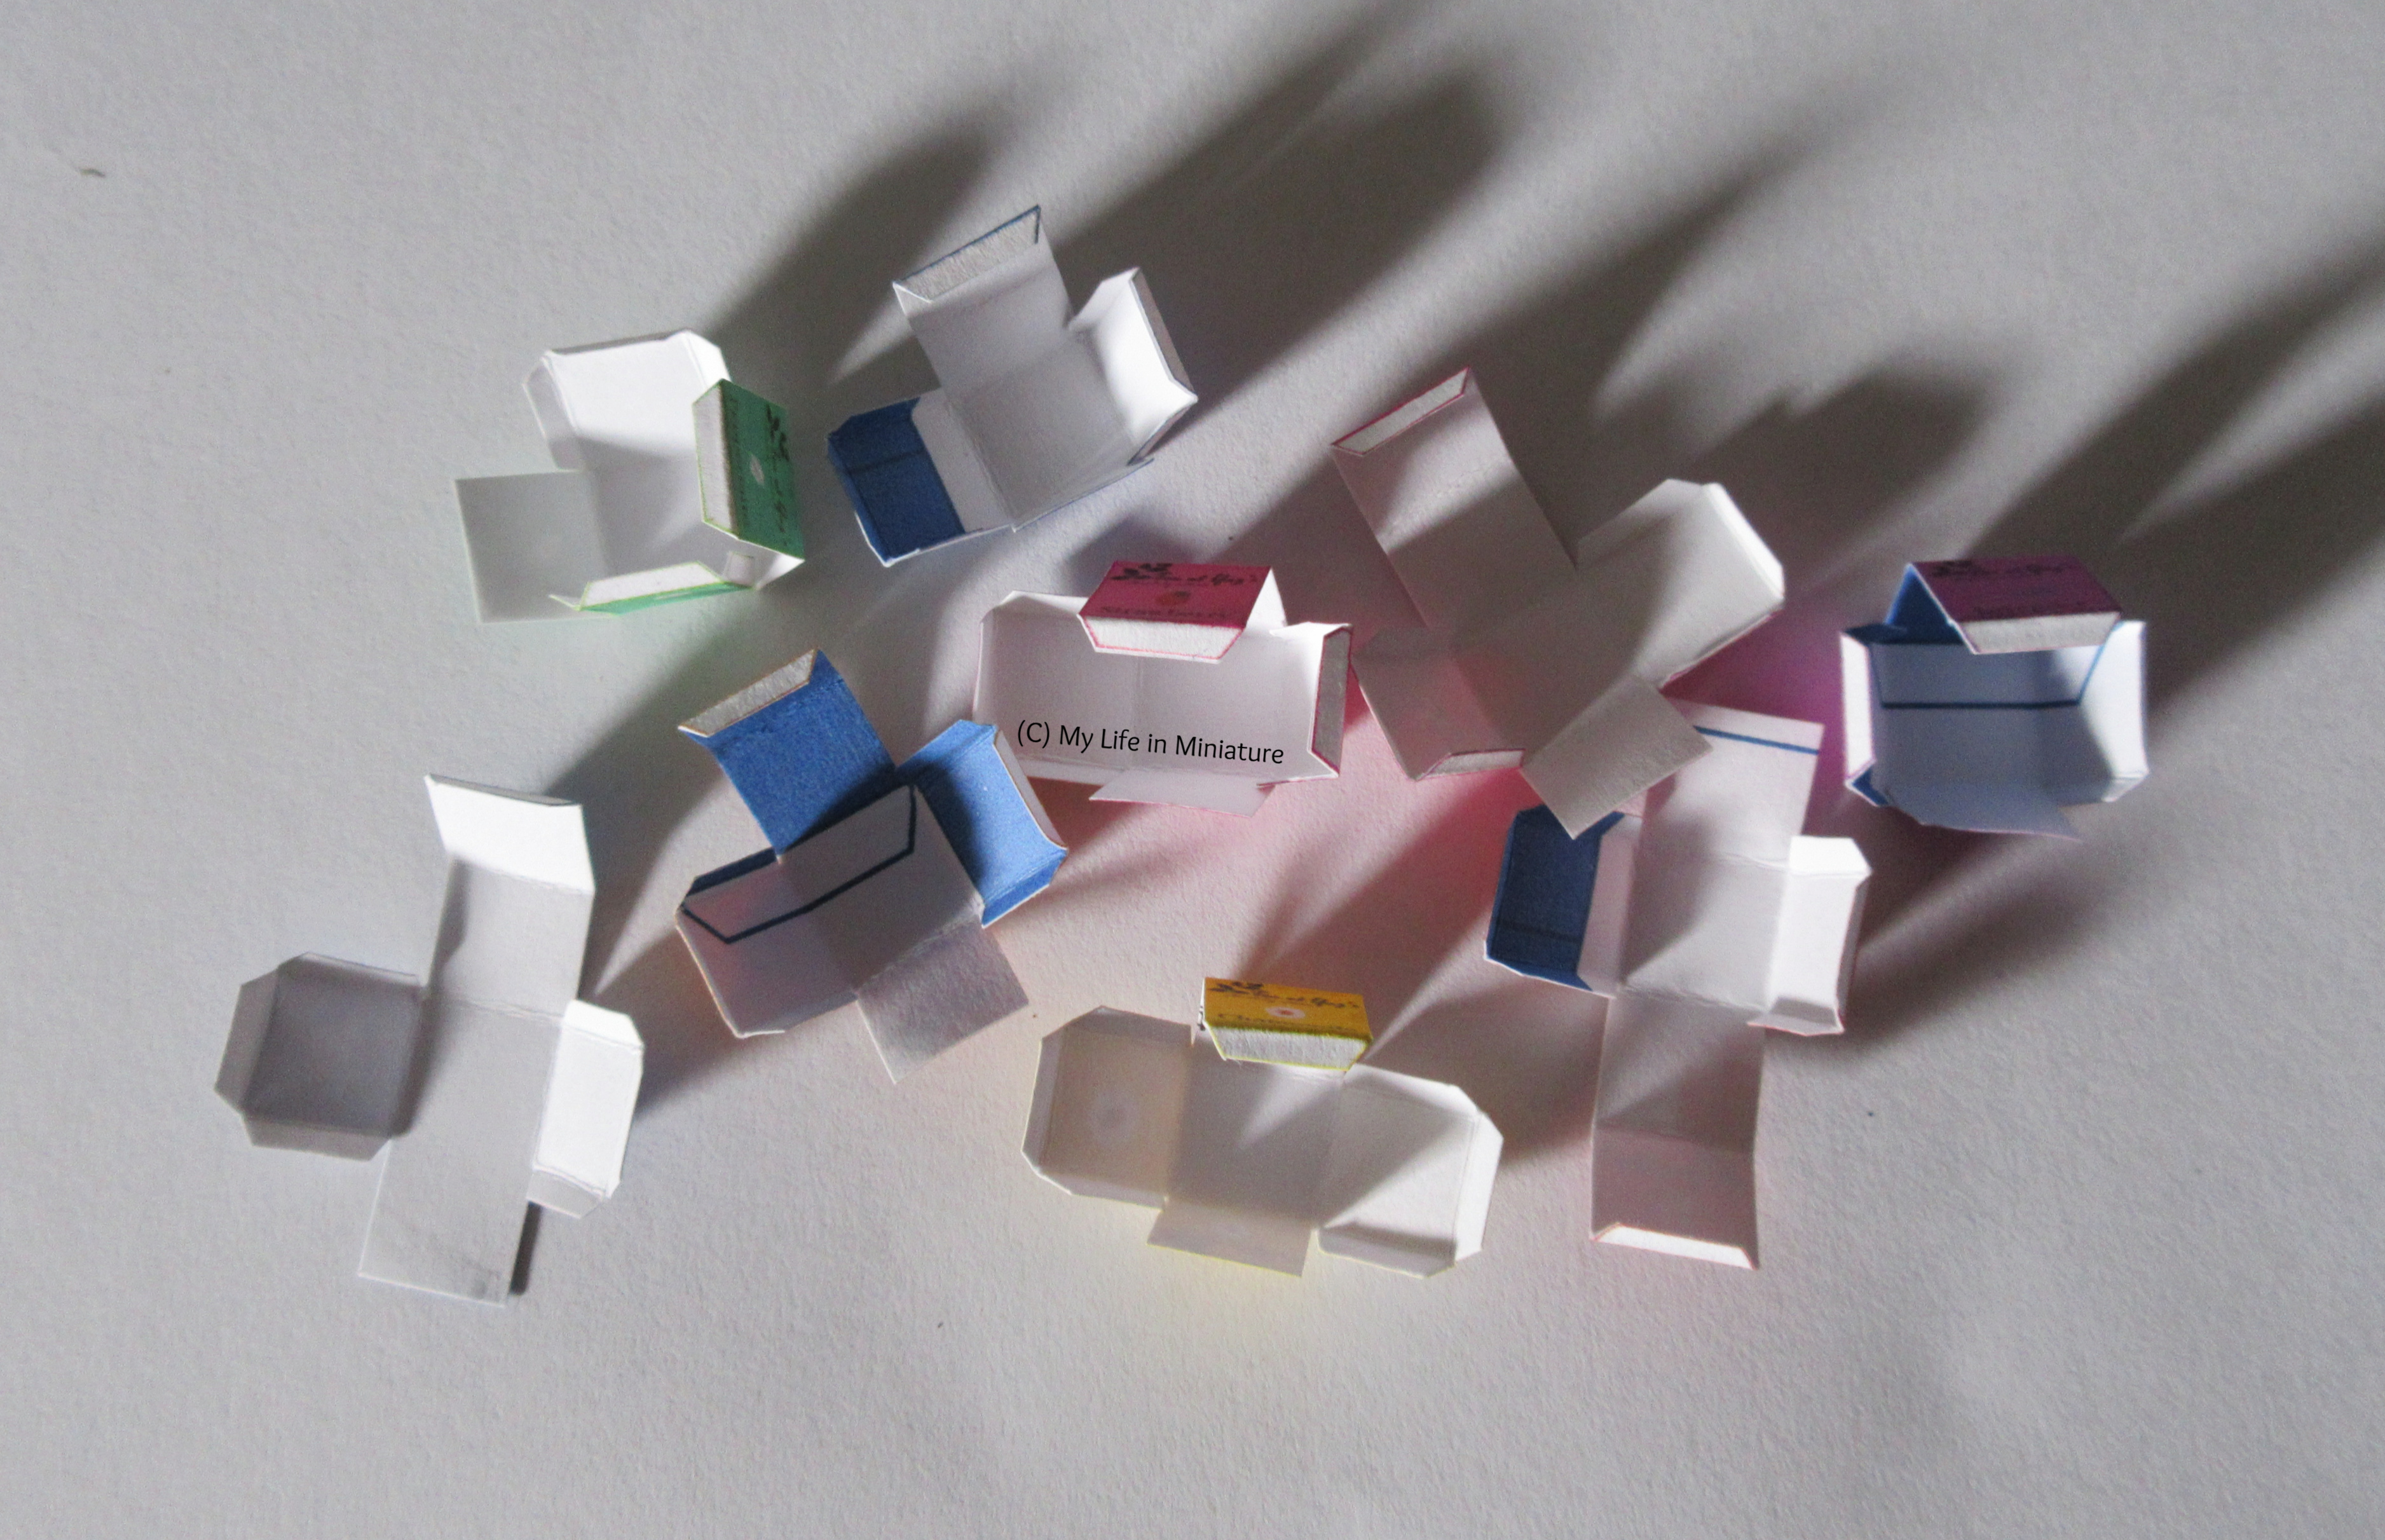 Nine small boxes sit in an unfinished state on a white background. What's on them is unclear.